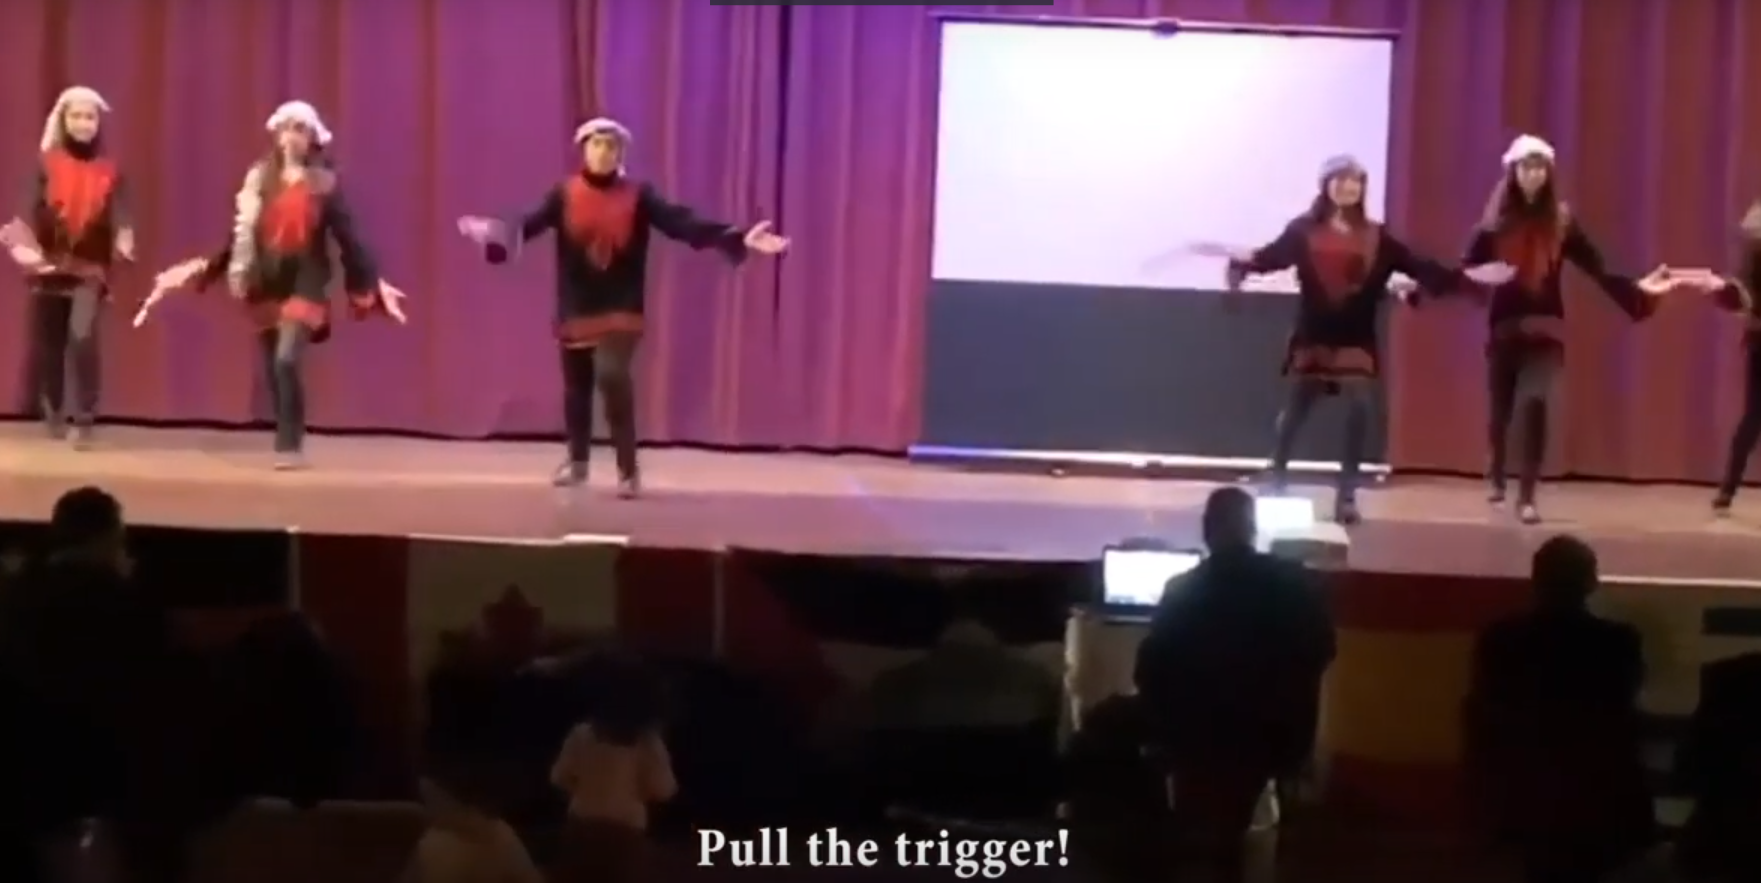 'PULL THE TRIGGER': Children dance to song promoting violence at Mississauga 'solidarity' event